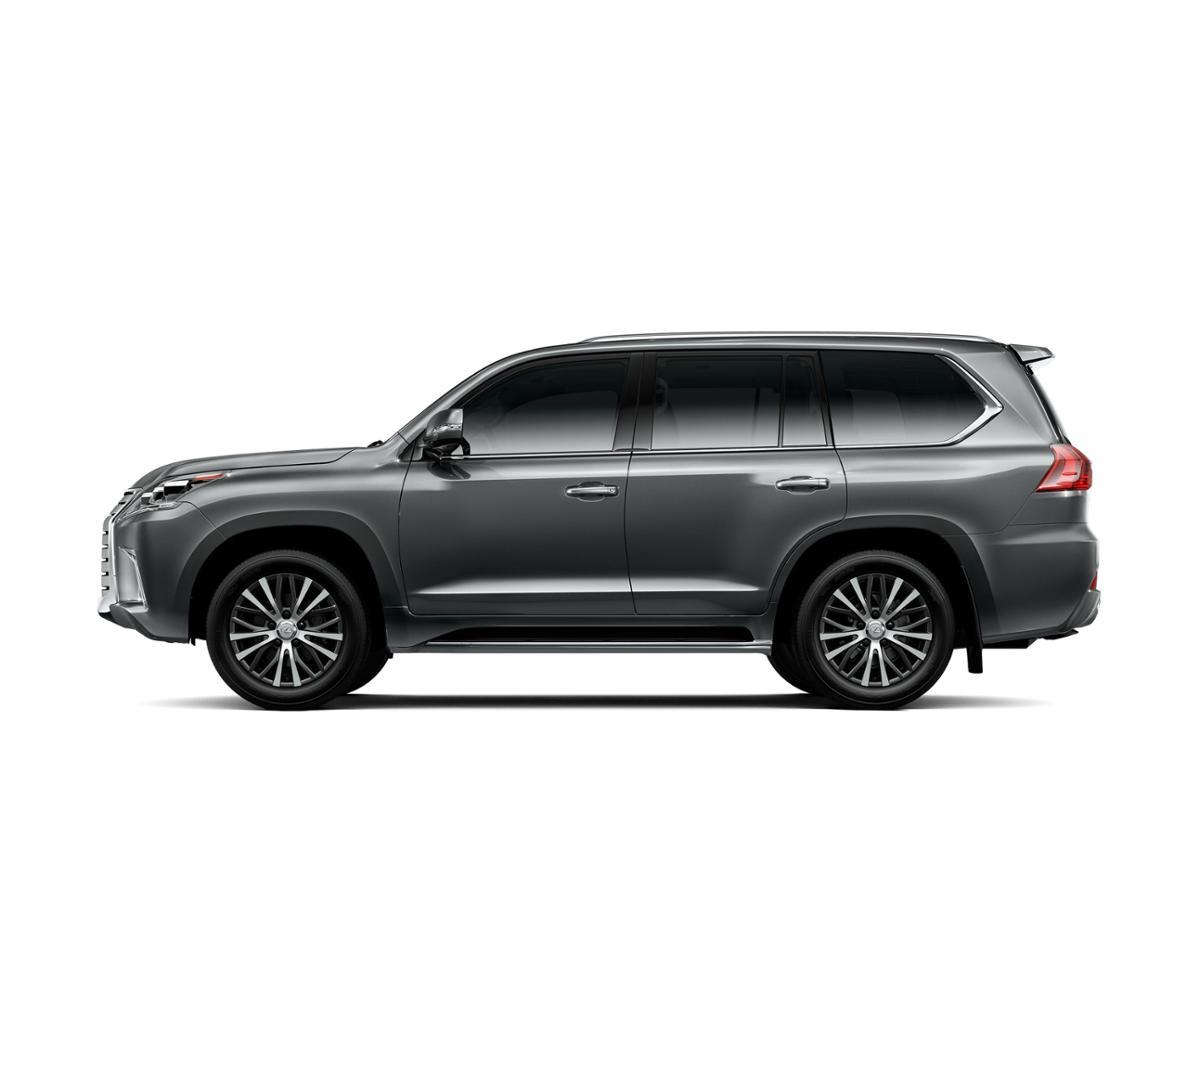 Fort Worth New 2019 Lexus LX 570 Nebula Gray Pearl: Suv for Sale in